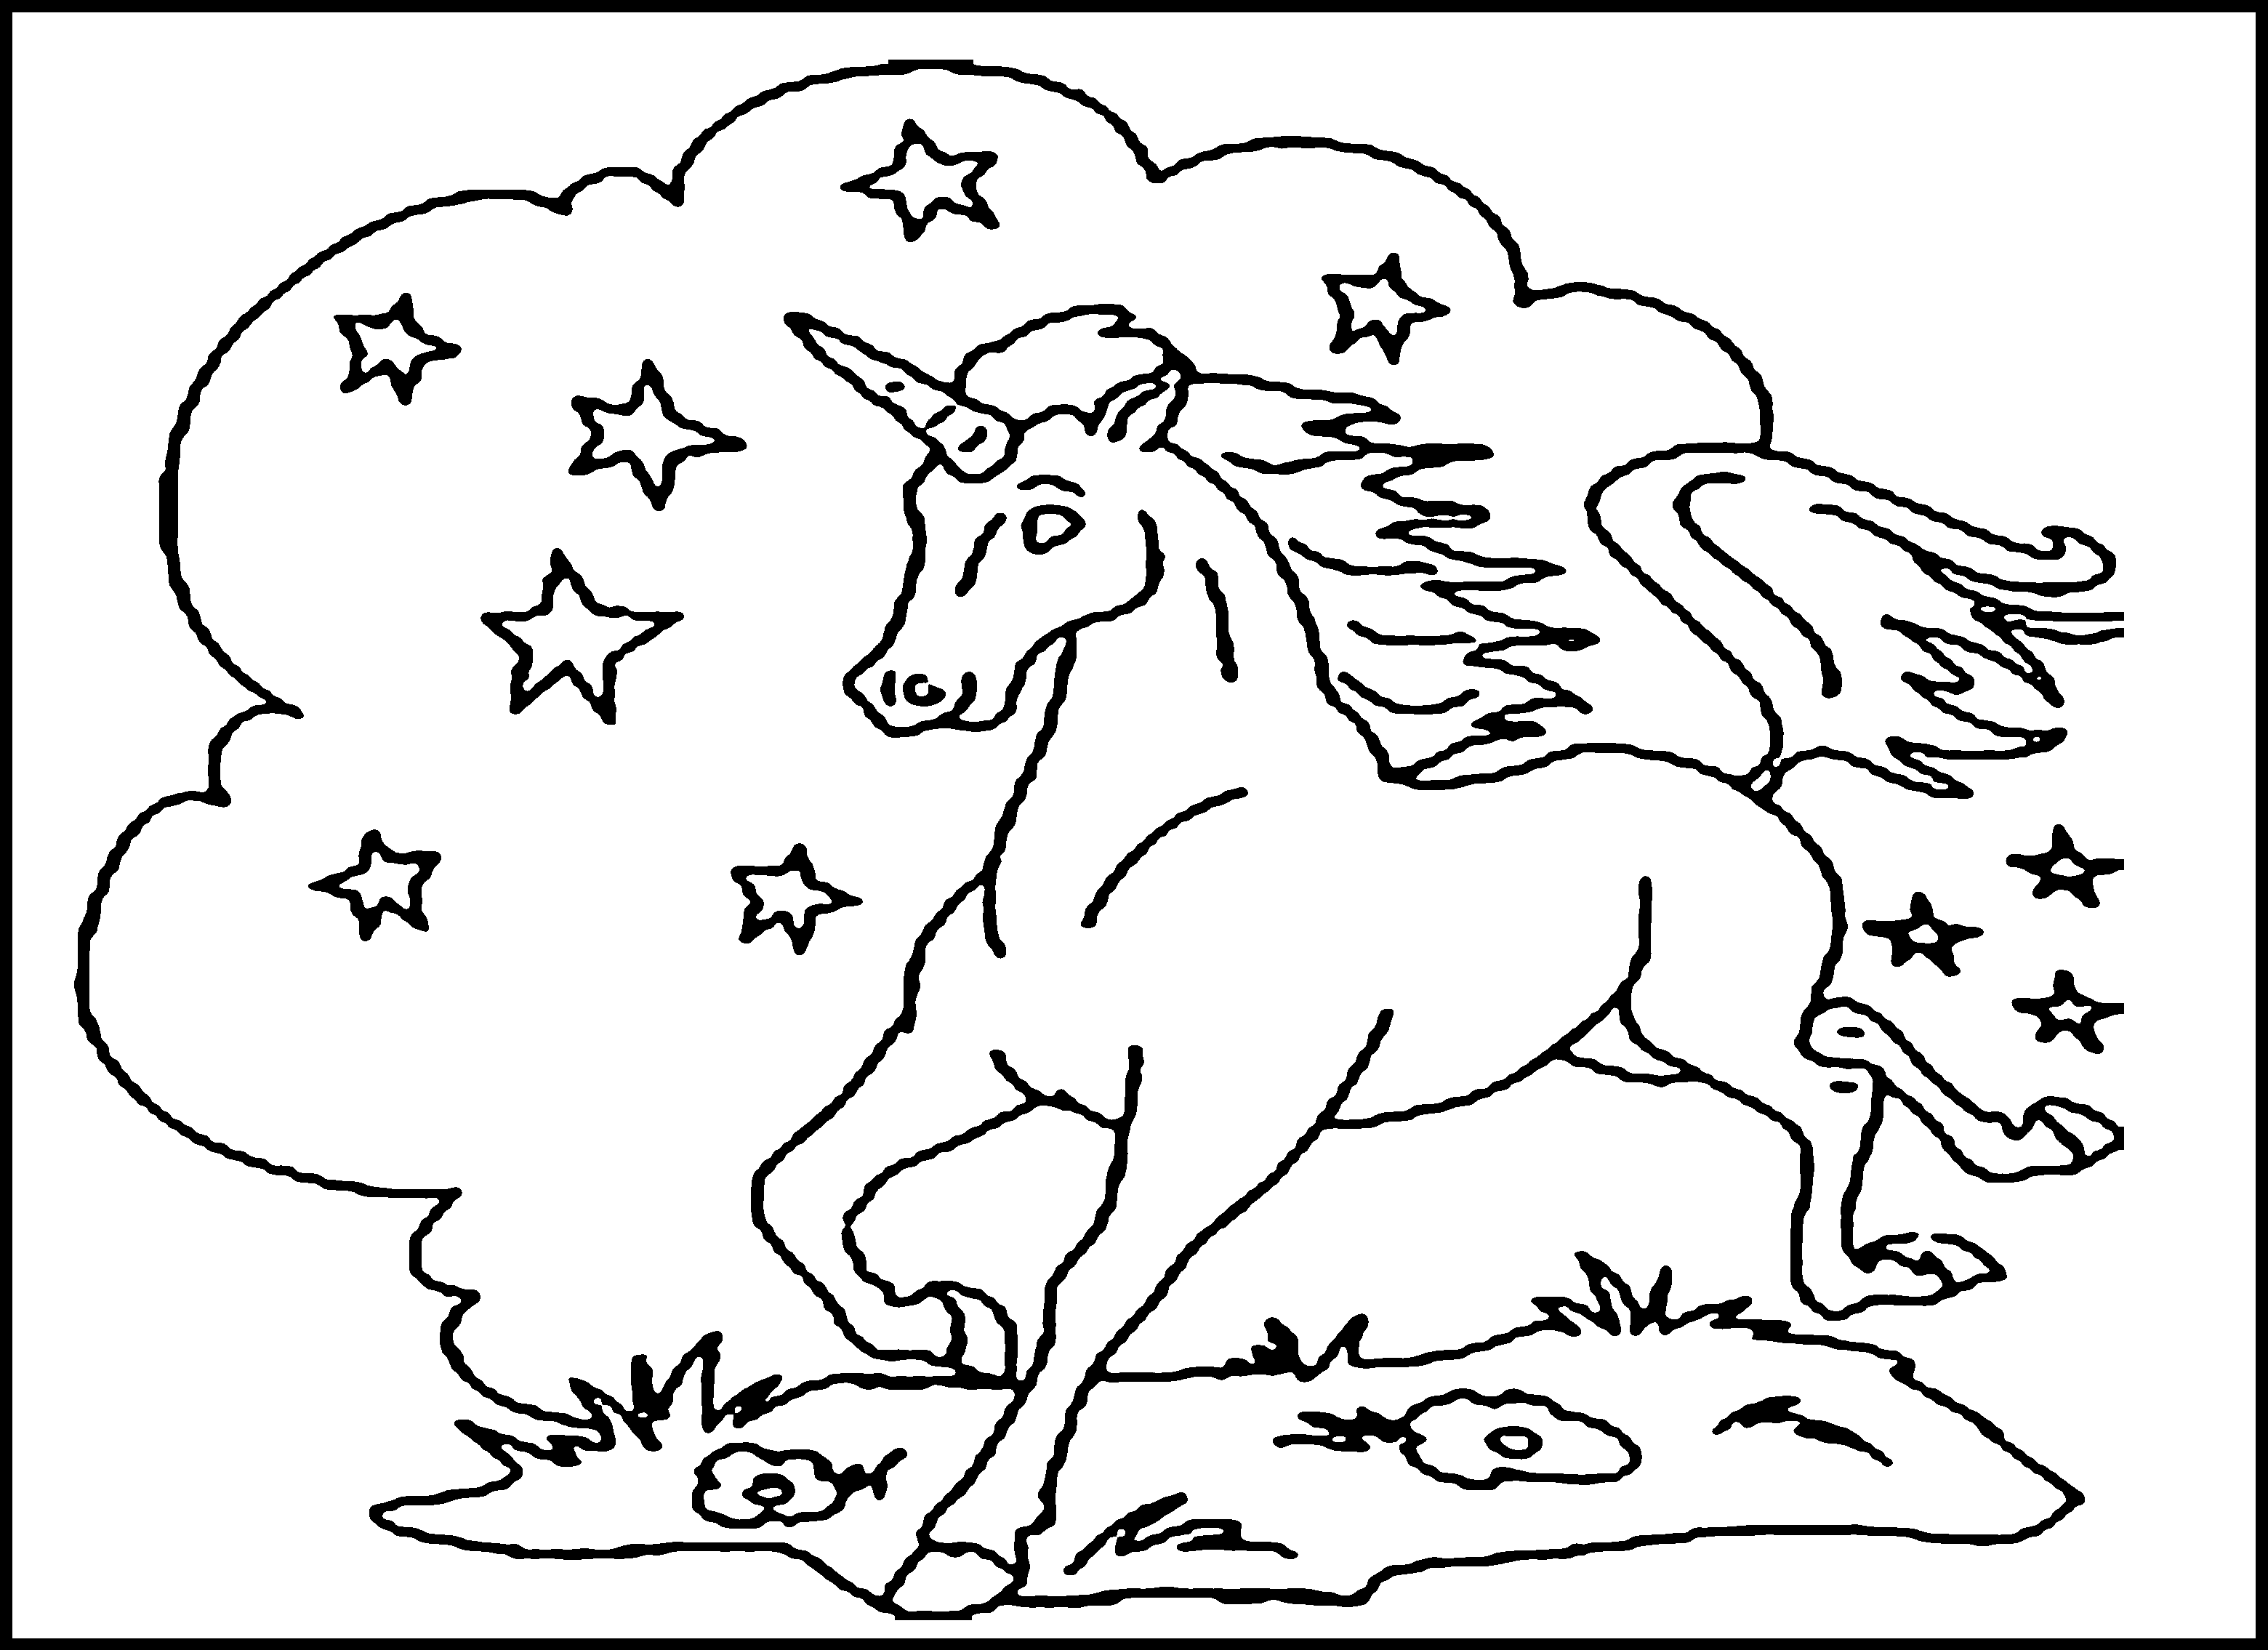 Coloring pages to print for children - Unicorn Printable Coloring Pages